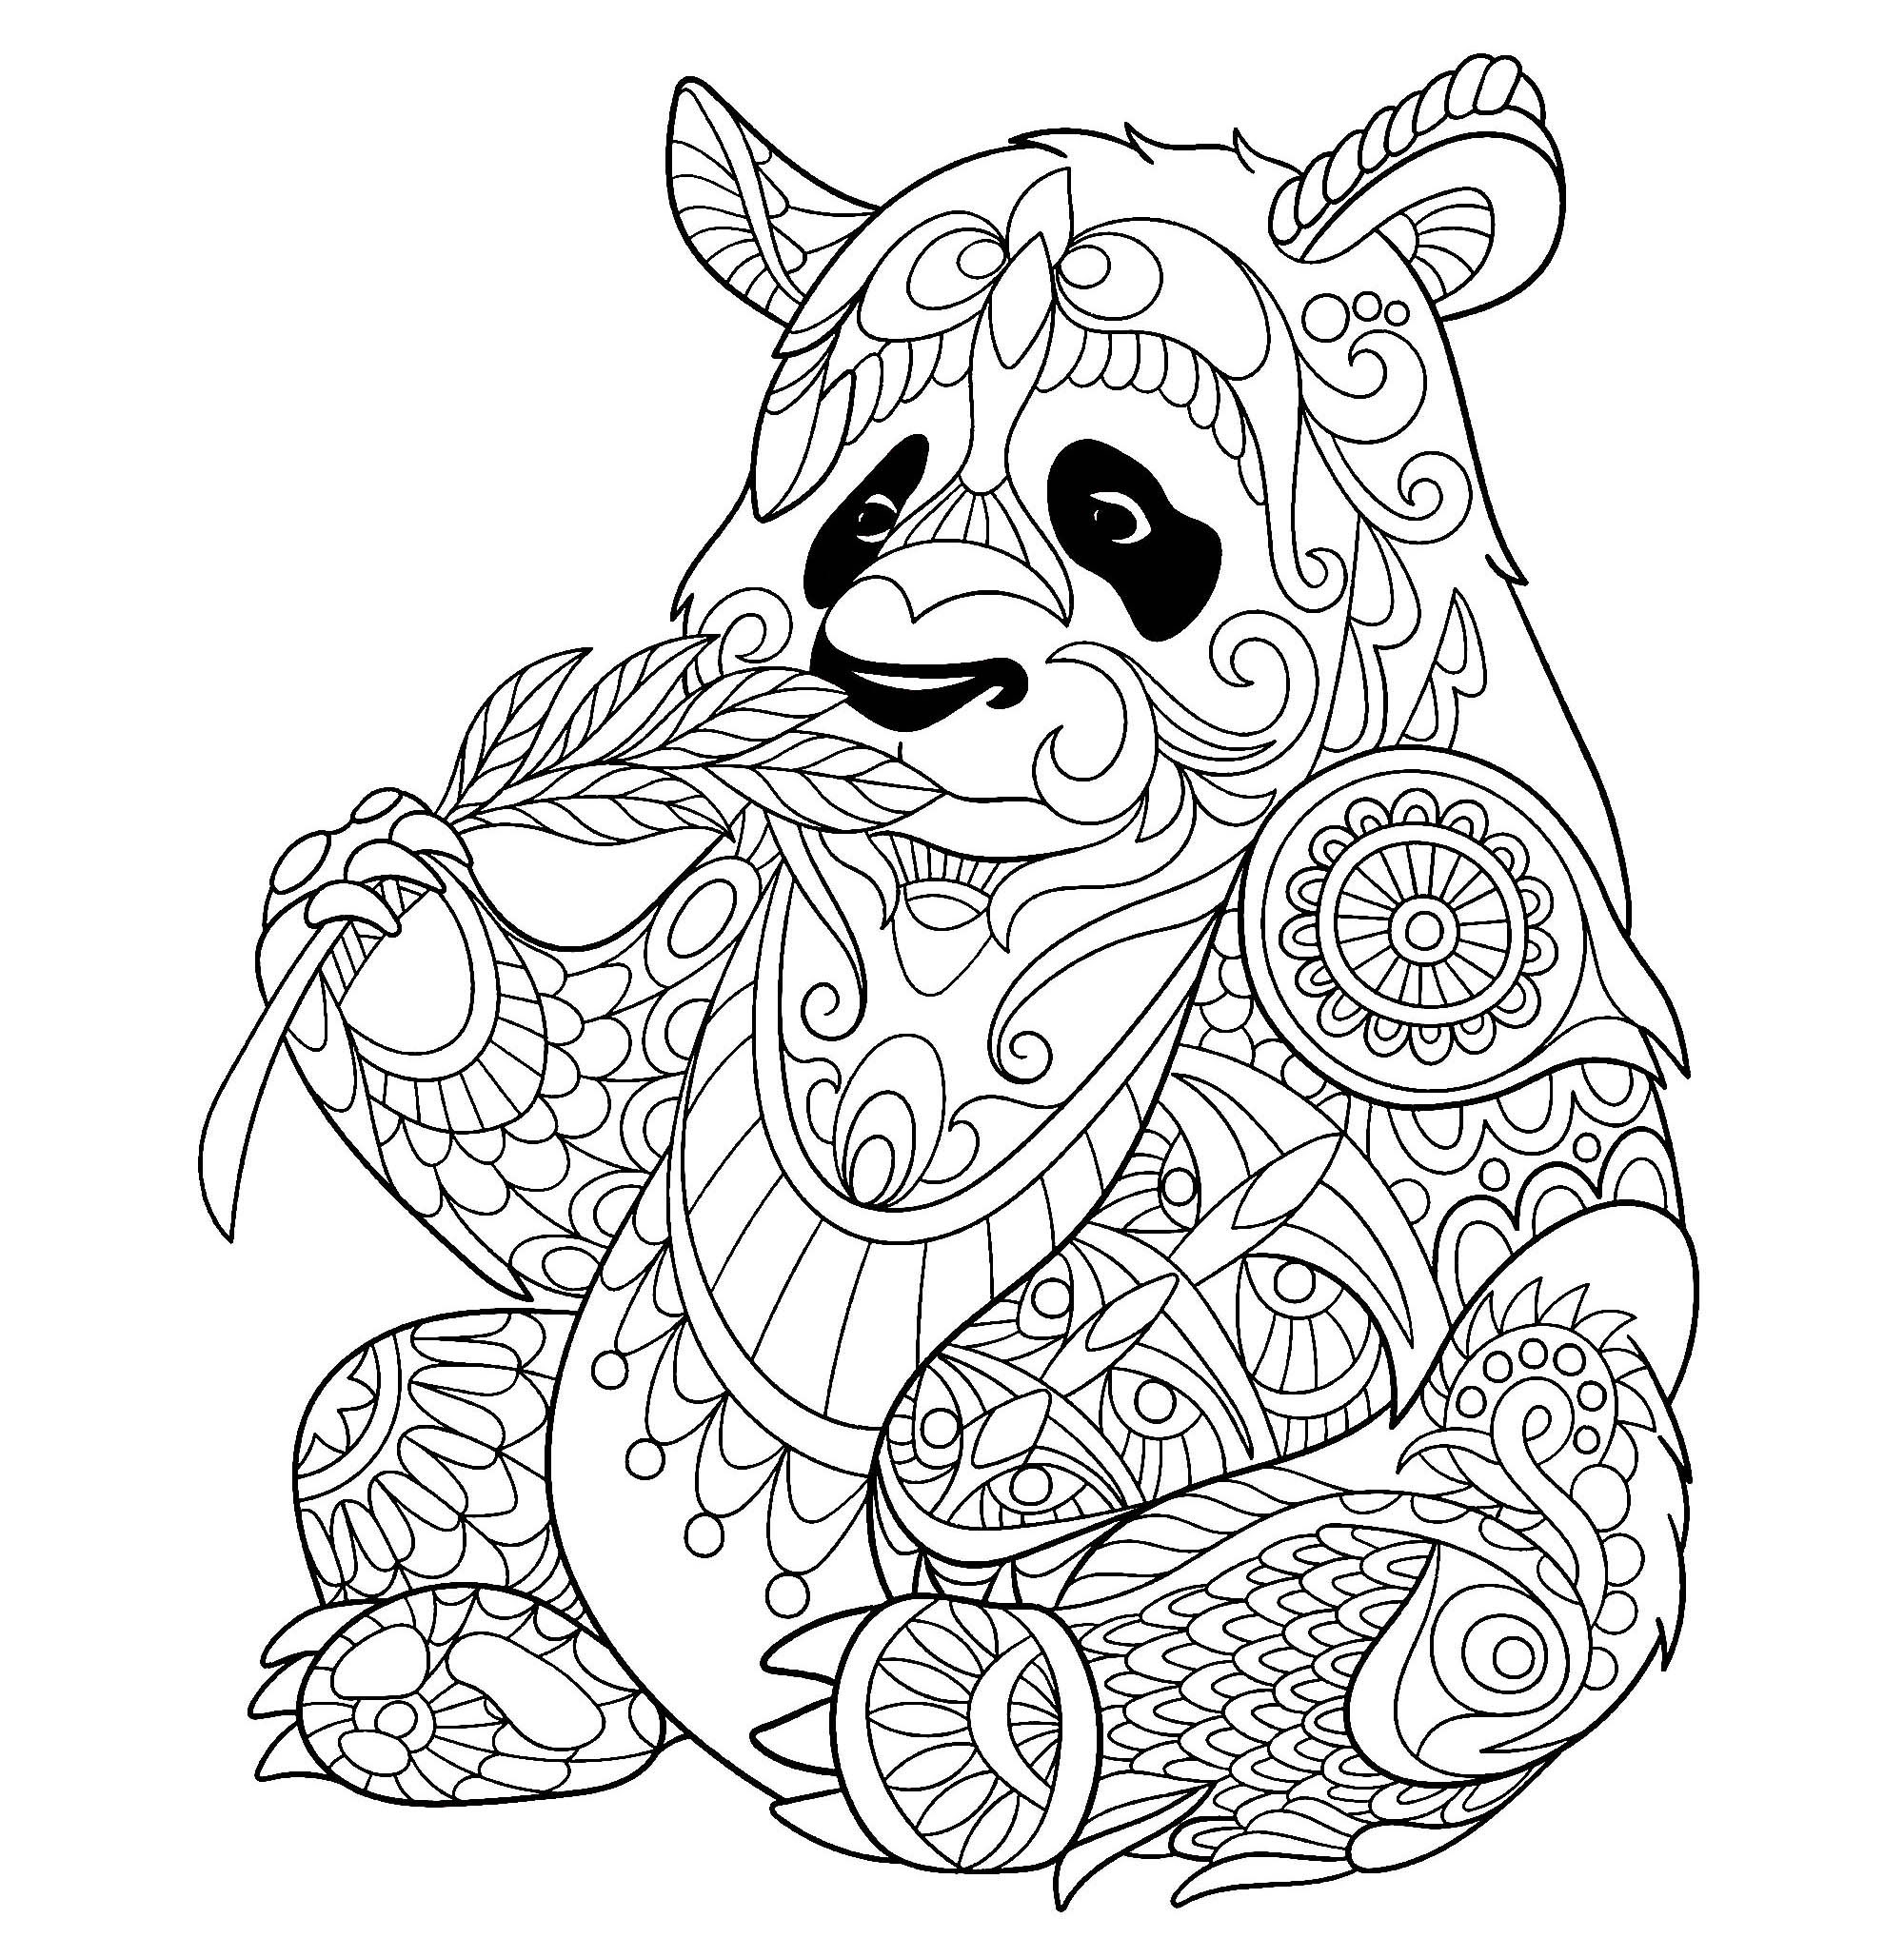 pandas coloring pages top 25 free printable cute panda bear coloring pages online pandas coloring pages